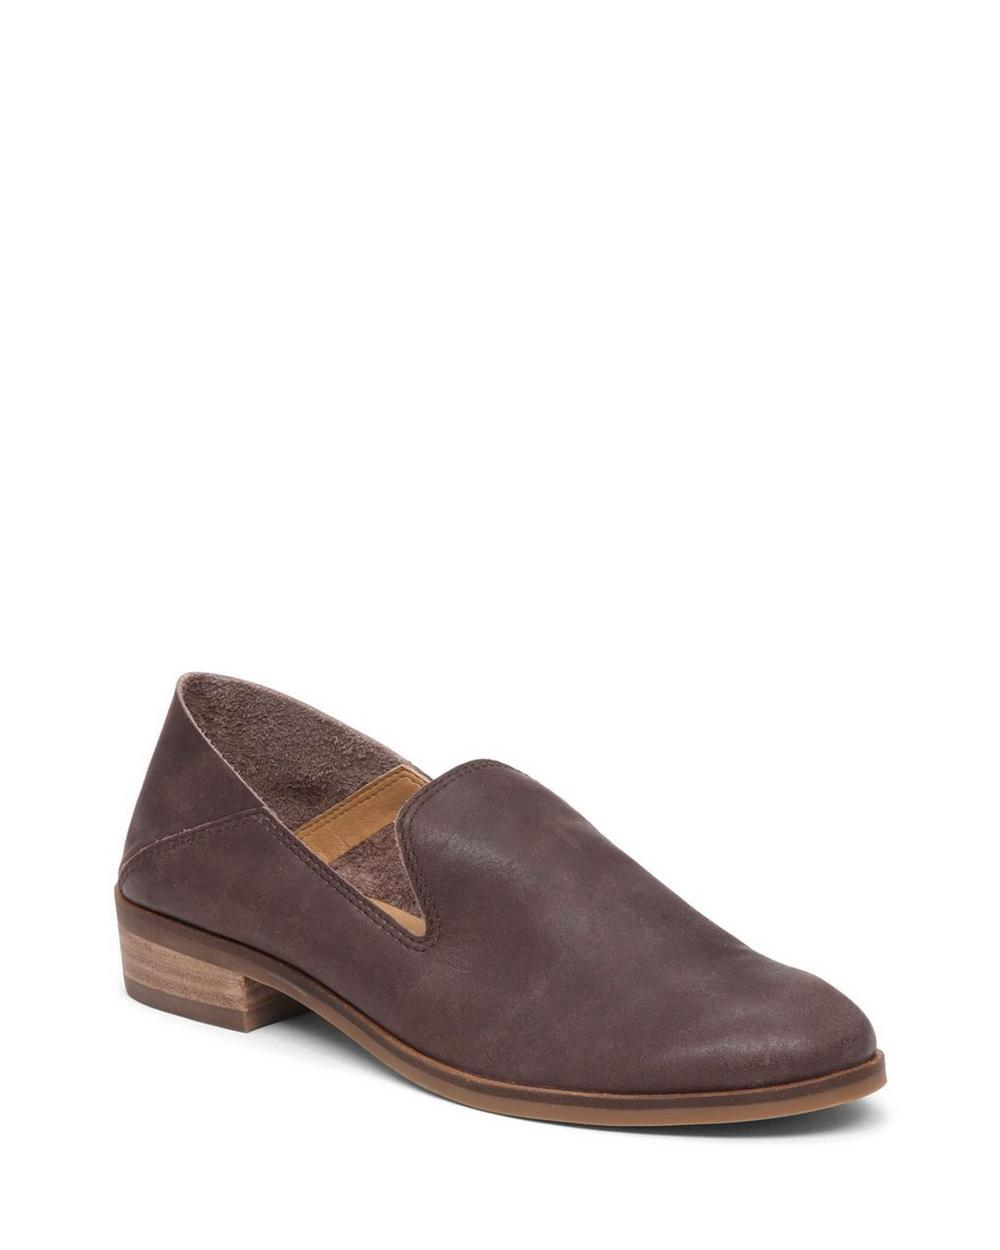 CAHILL LEATHER FLAT, image 1